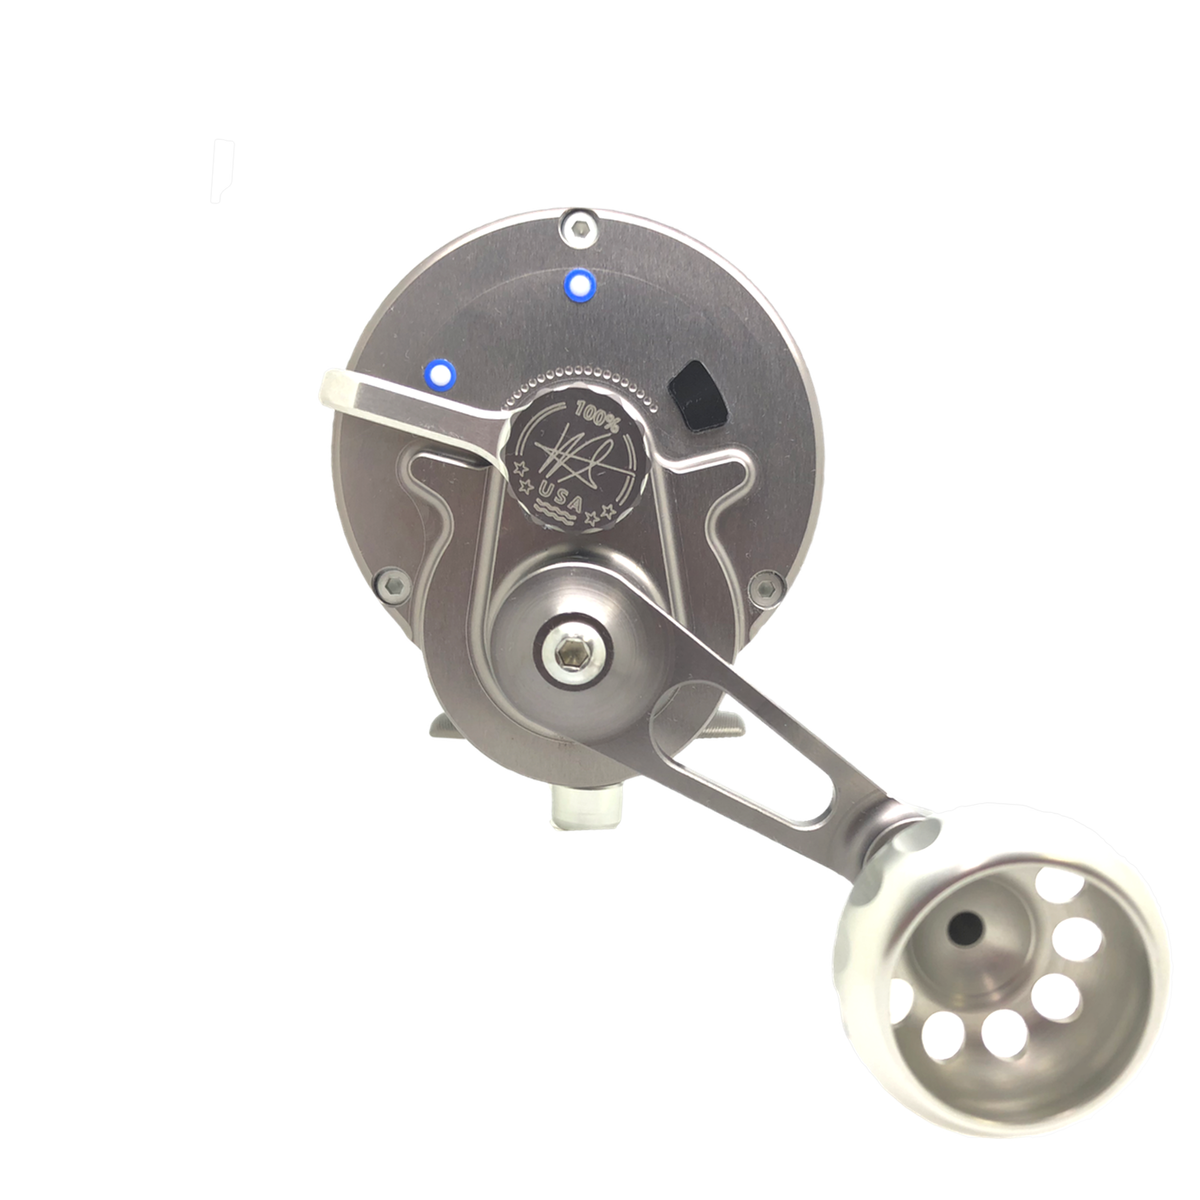 SEiGLER OS Conventional lever drag fishing reel in Silver accents and Gunmetal anodized finish, American made made in Virginia Lifetime warranty